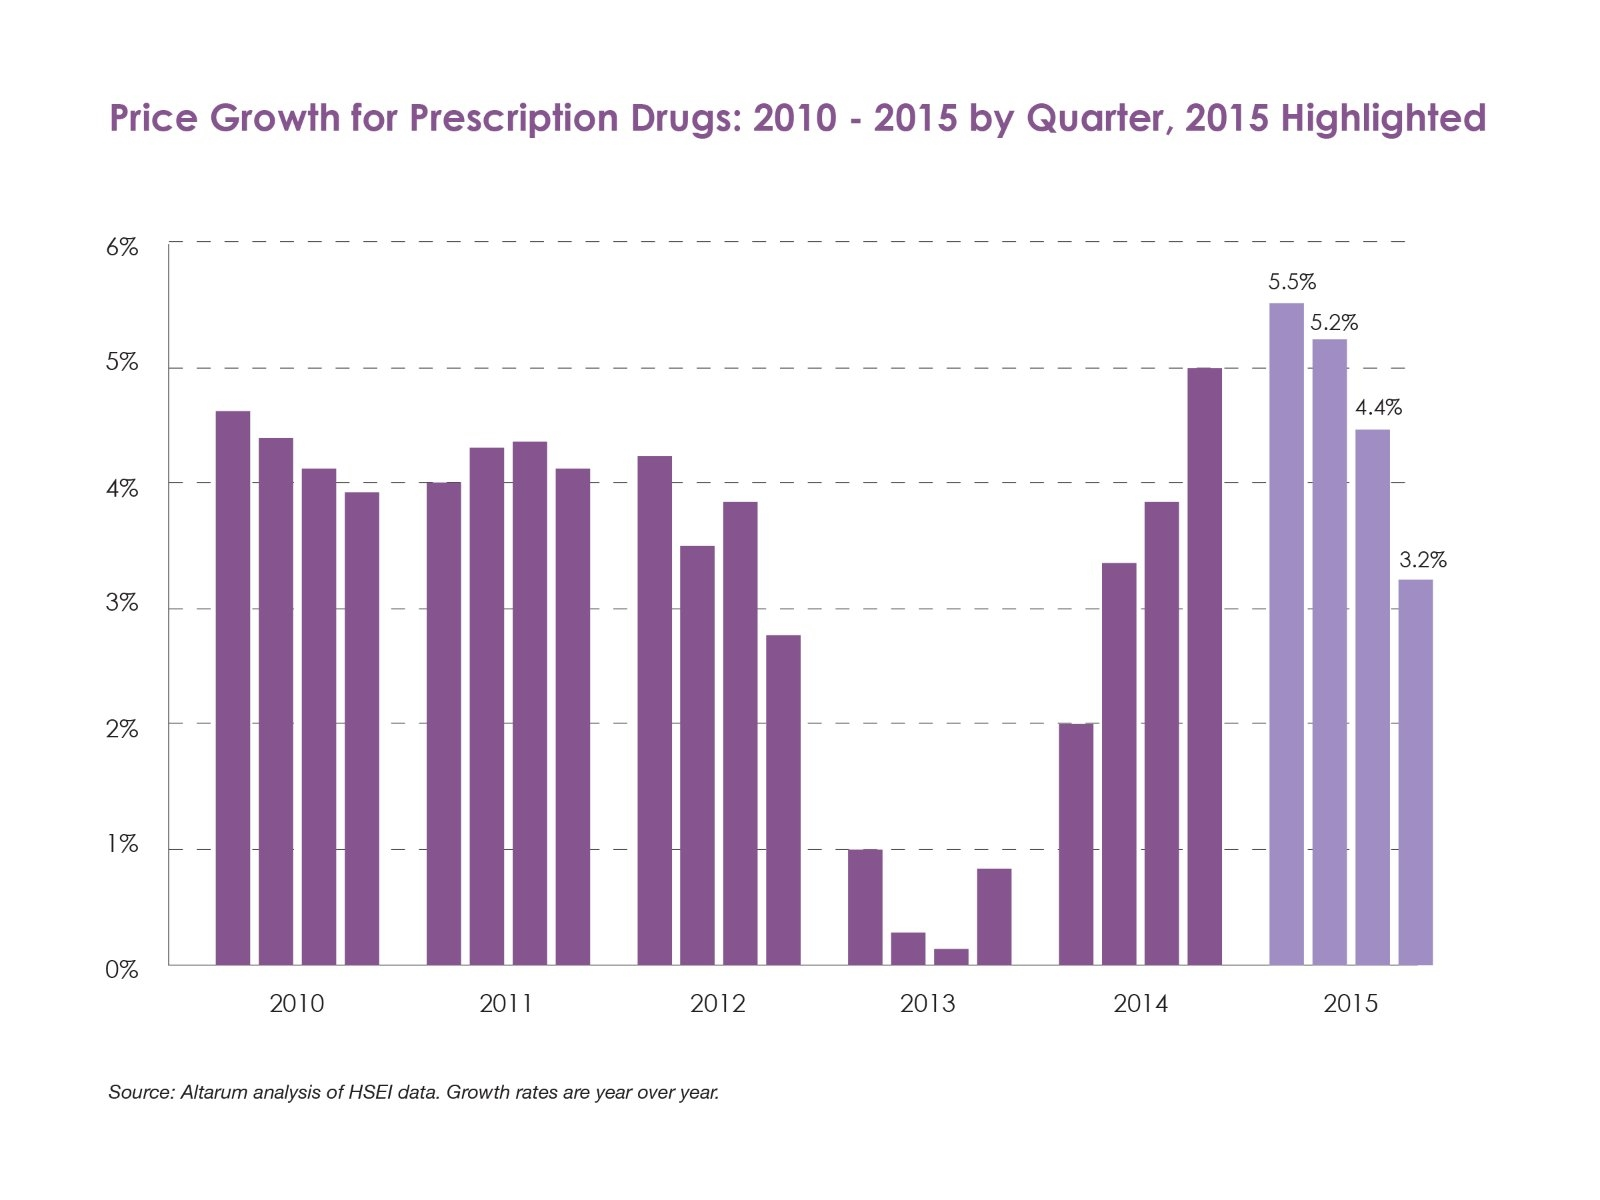 Price Growth for Prescription Drugs